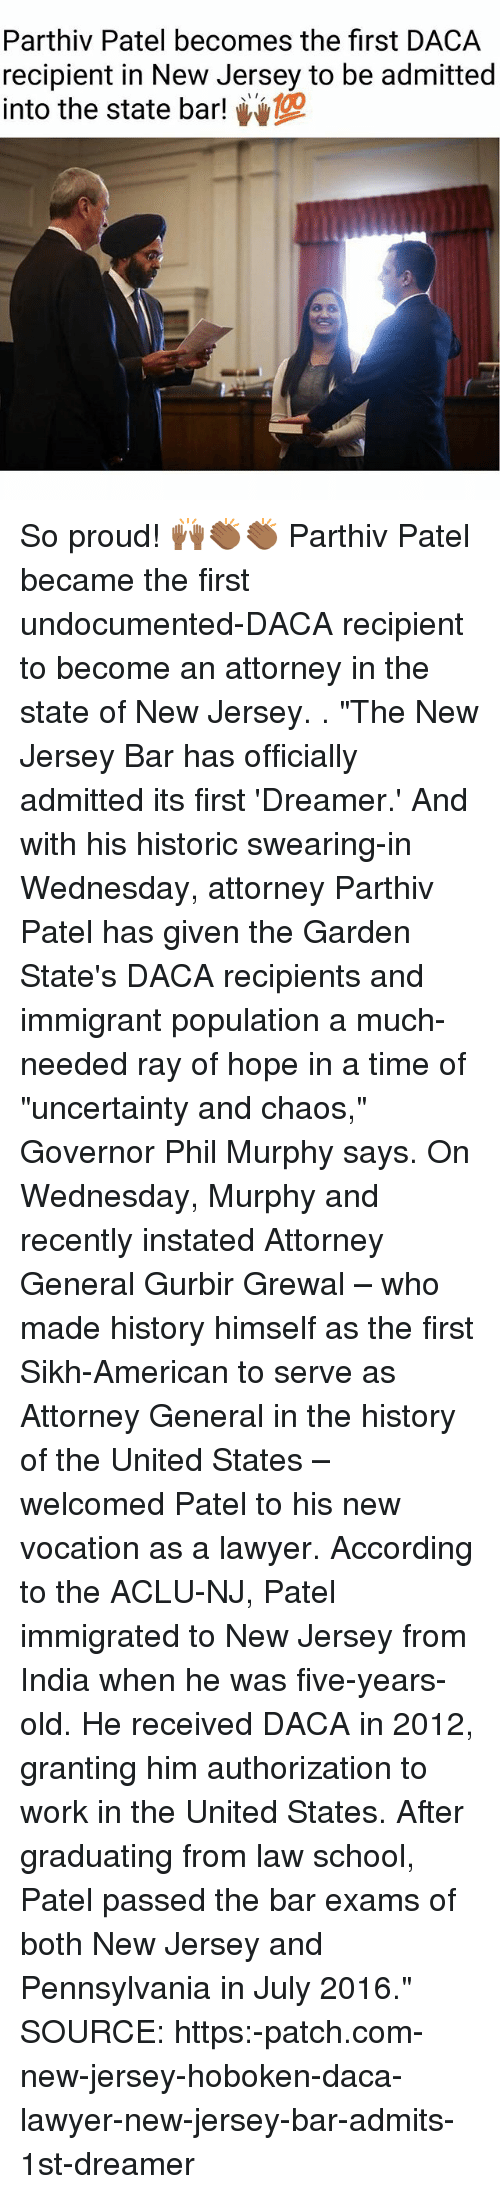 "Lawyer, Memes, and School: Parthiv Patel becomes the first DACA  recipient in New Jersey to be admitted  into the state bar! So proud! 🙌🏾👏🏾👏🏾 Parthiv Patel became the first undocumented-DACA recipient to become an attorney in the state of New Jersey. . ""The New Jersey Bar has officially admitted its first 'Dreamer.' And with his historic swearing-in Wednesday, attorney Parthiv Patel has given the Garden State's DACA recipients and immigrant population a much-needed ray of hope in a time of ""uncertainty and chaos,"" Governor Phil Murphy says. On Wednesday, Murphy and recently instated Attorney General Gurbir Grewal – who made history himself as the first Sikh-American to serve as Attorney General in the history of the United States – welcomed Patel to his new vocation as a lawyer. According to the ACLU-NJ, Patel immigrated to New Jersey from India when he was five-years-old. He received DACA in 2012, granting him authorization to work in the United States. After graduating from law school, Patel passed the bar exams of both New Jersey and Pennsylvania in July 2016."" SOURCE: https:-patch.com-new-jersey-hoboken-daca-lawyer-new-jersey-bar-admits-1st-dreamer"